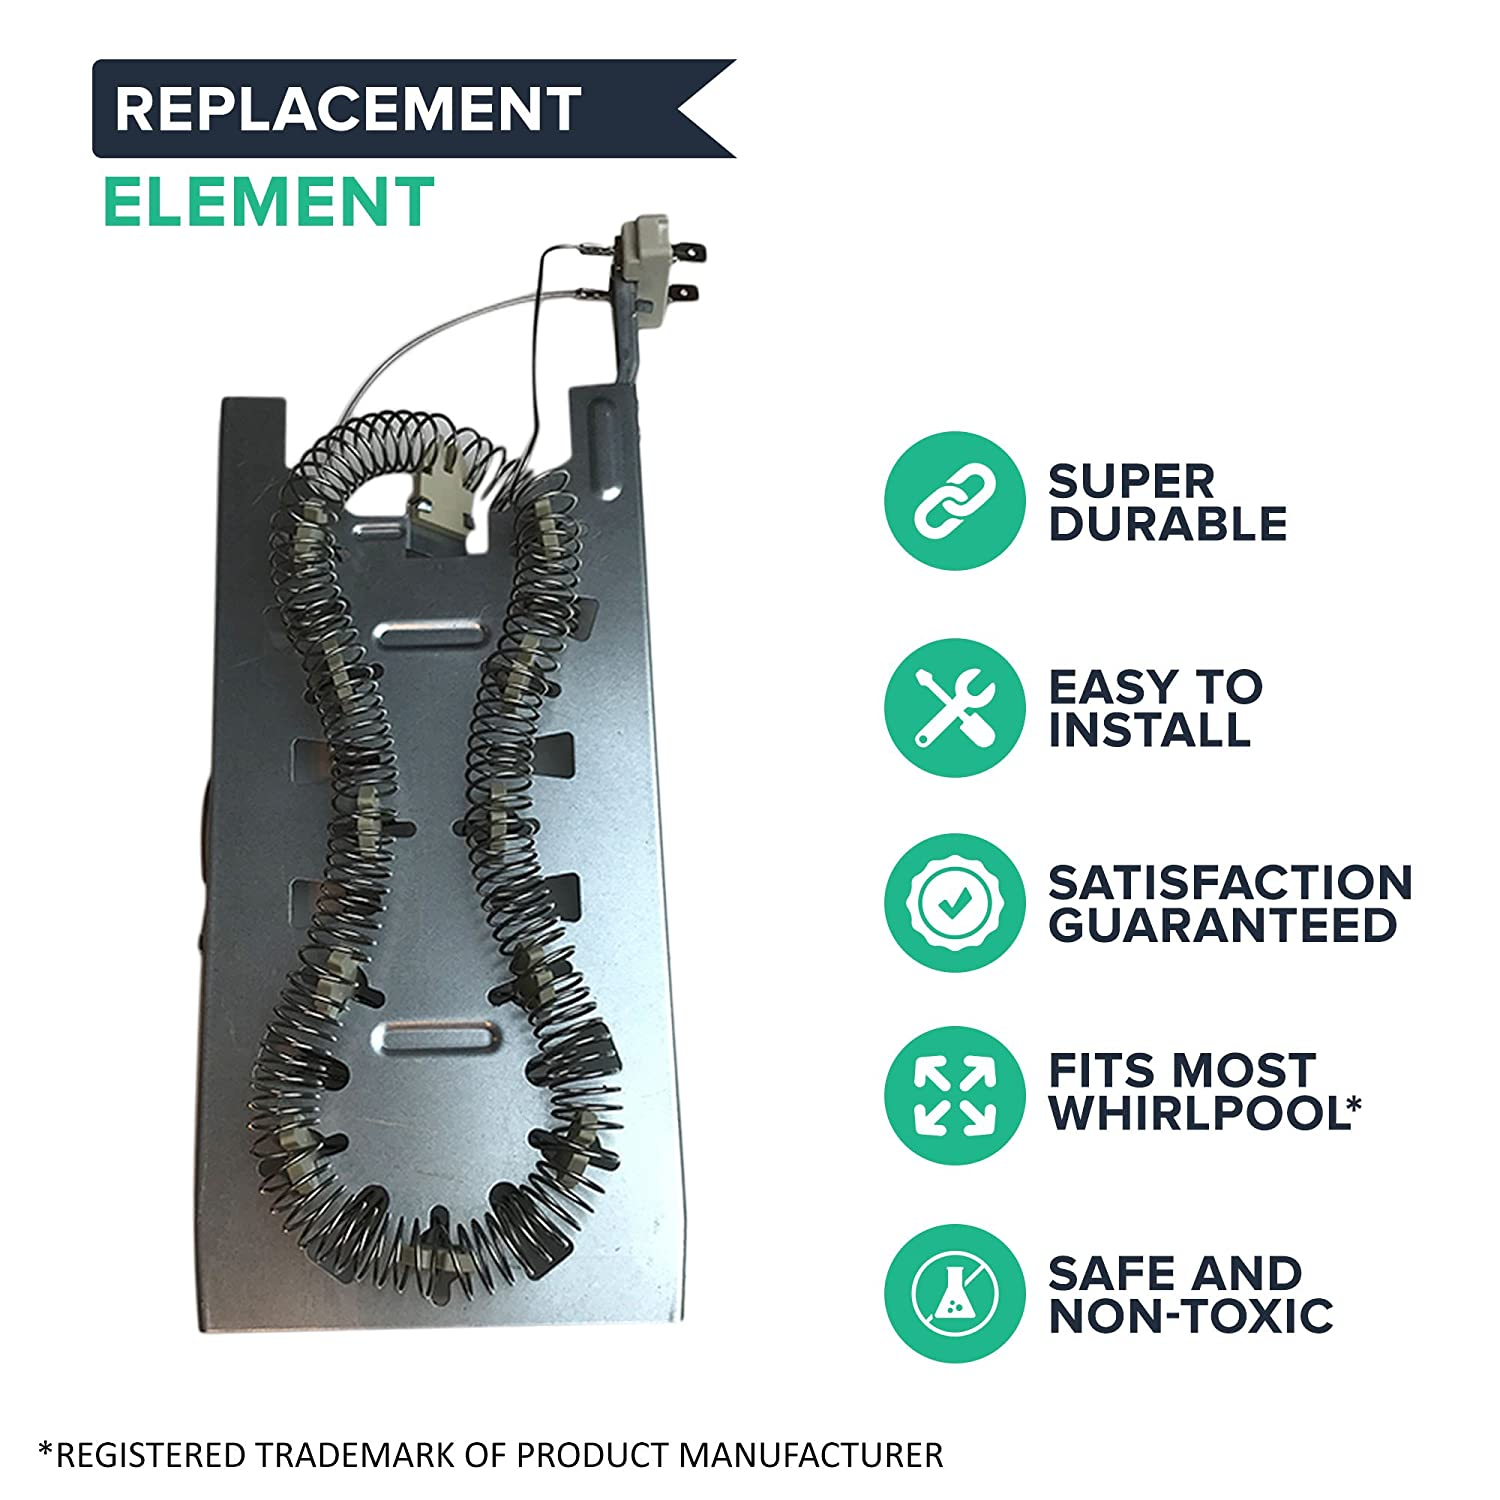 Amazon.com: Think Crucial Replacement for Whirlpool Dryer Heating Element  Fits Amana, KitchenAid & Maytag Dryers, Compatible With Part # 3387747,  8527865, ...